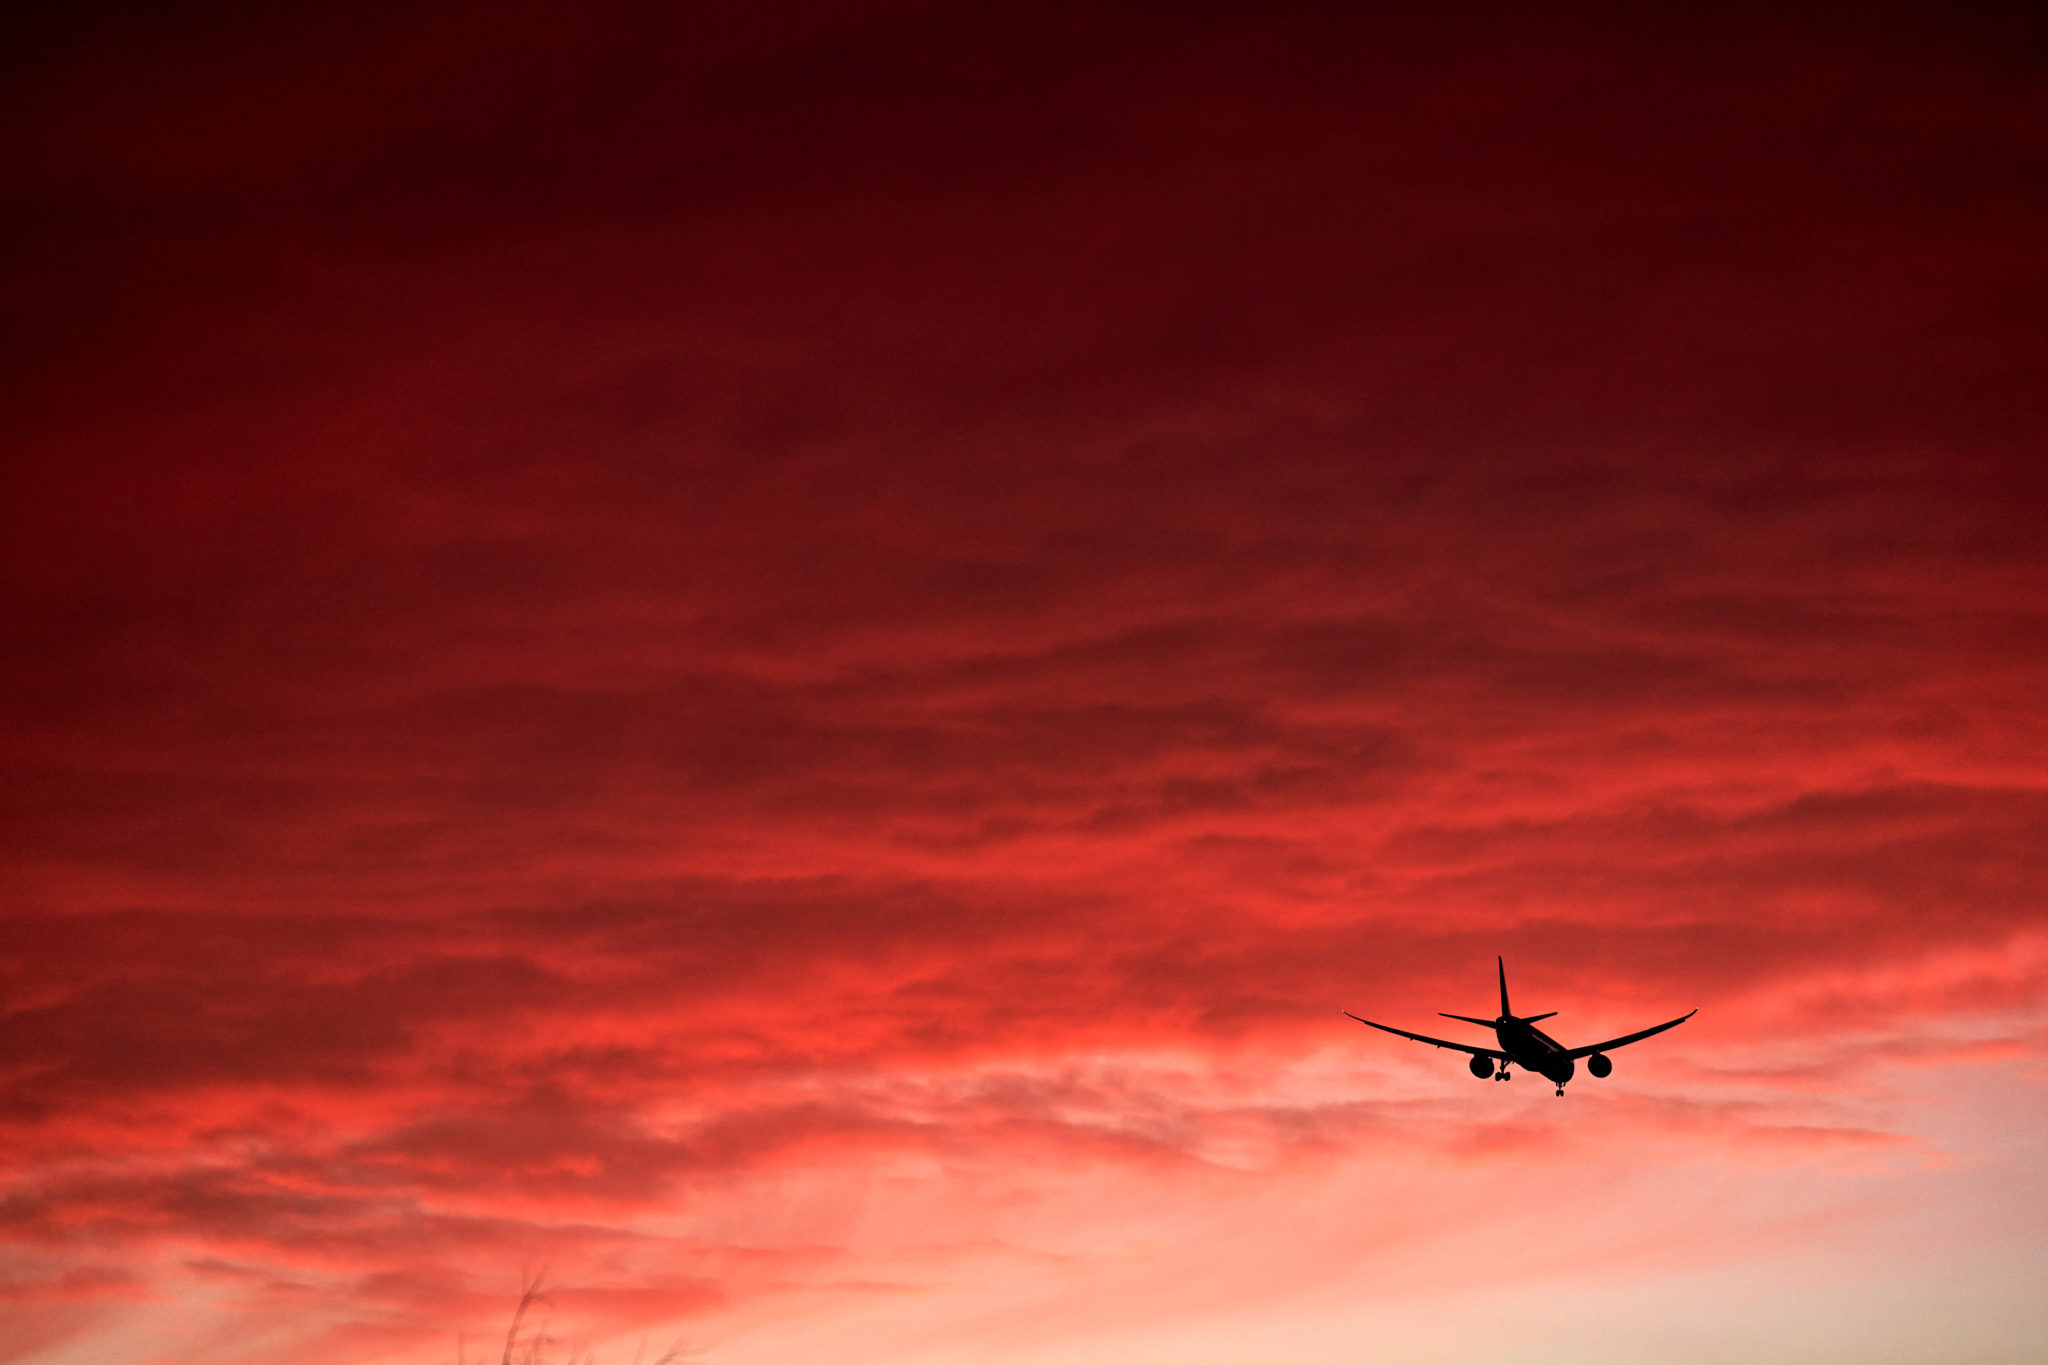 A plane flies under a red sky at sunset in Isleworth, London